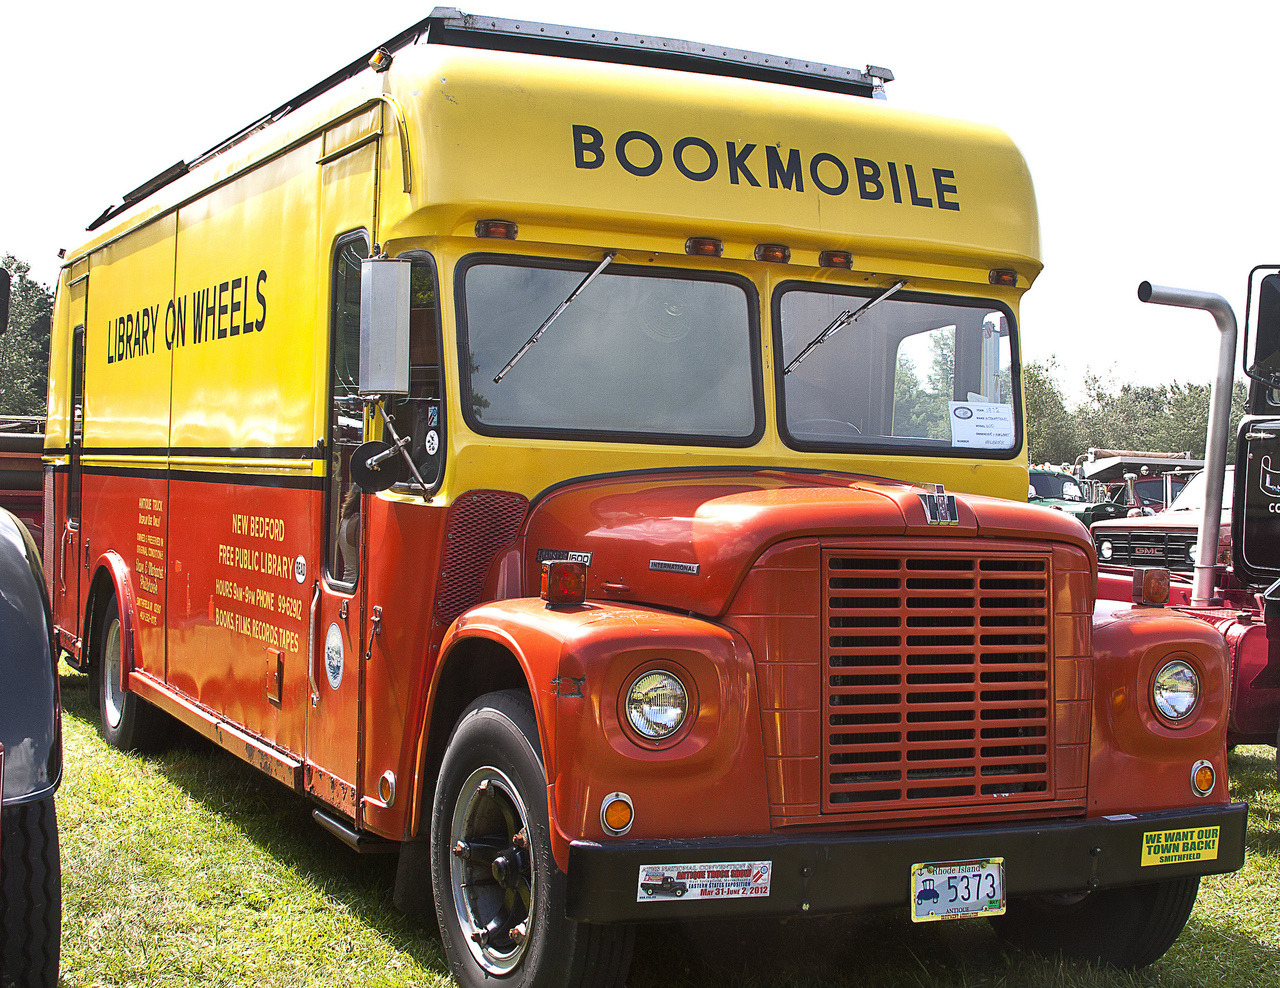 Bookmobile (via Jessamyn)